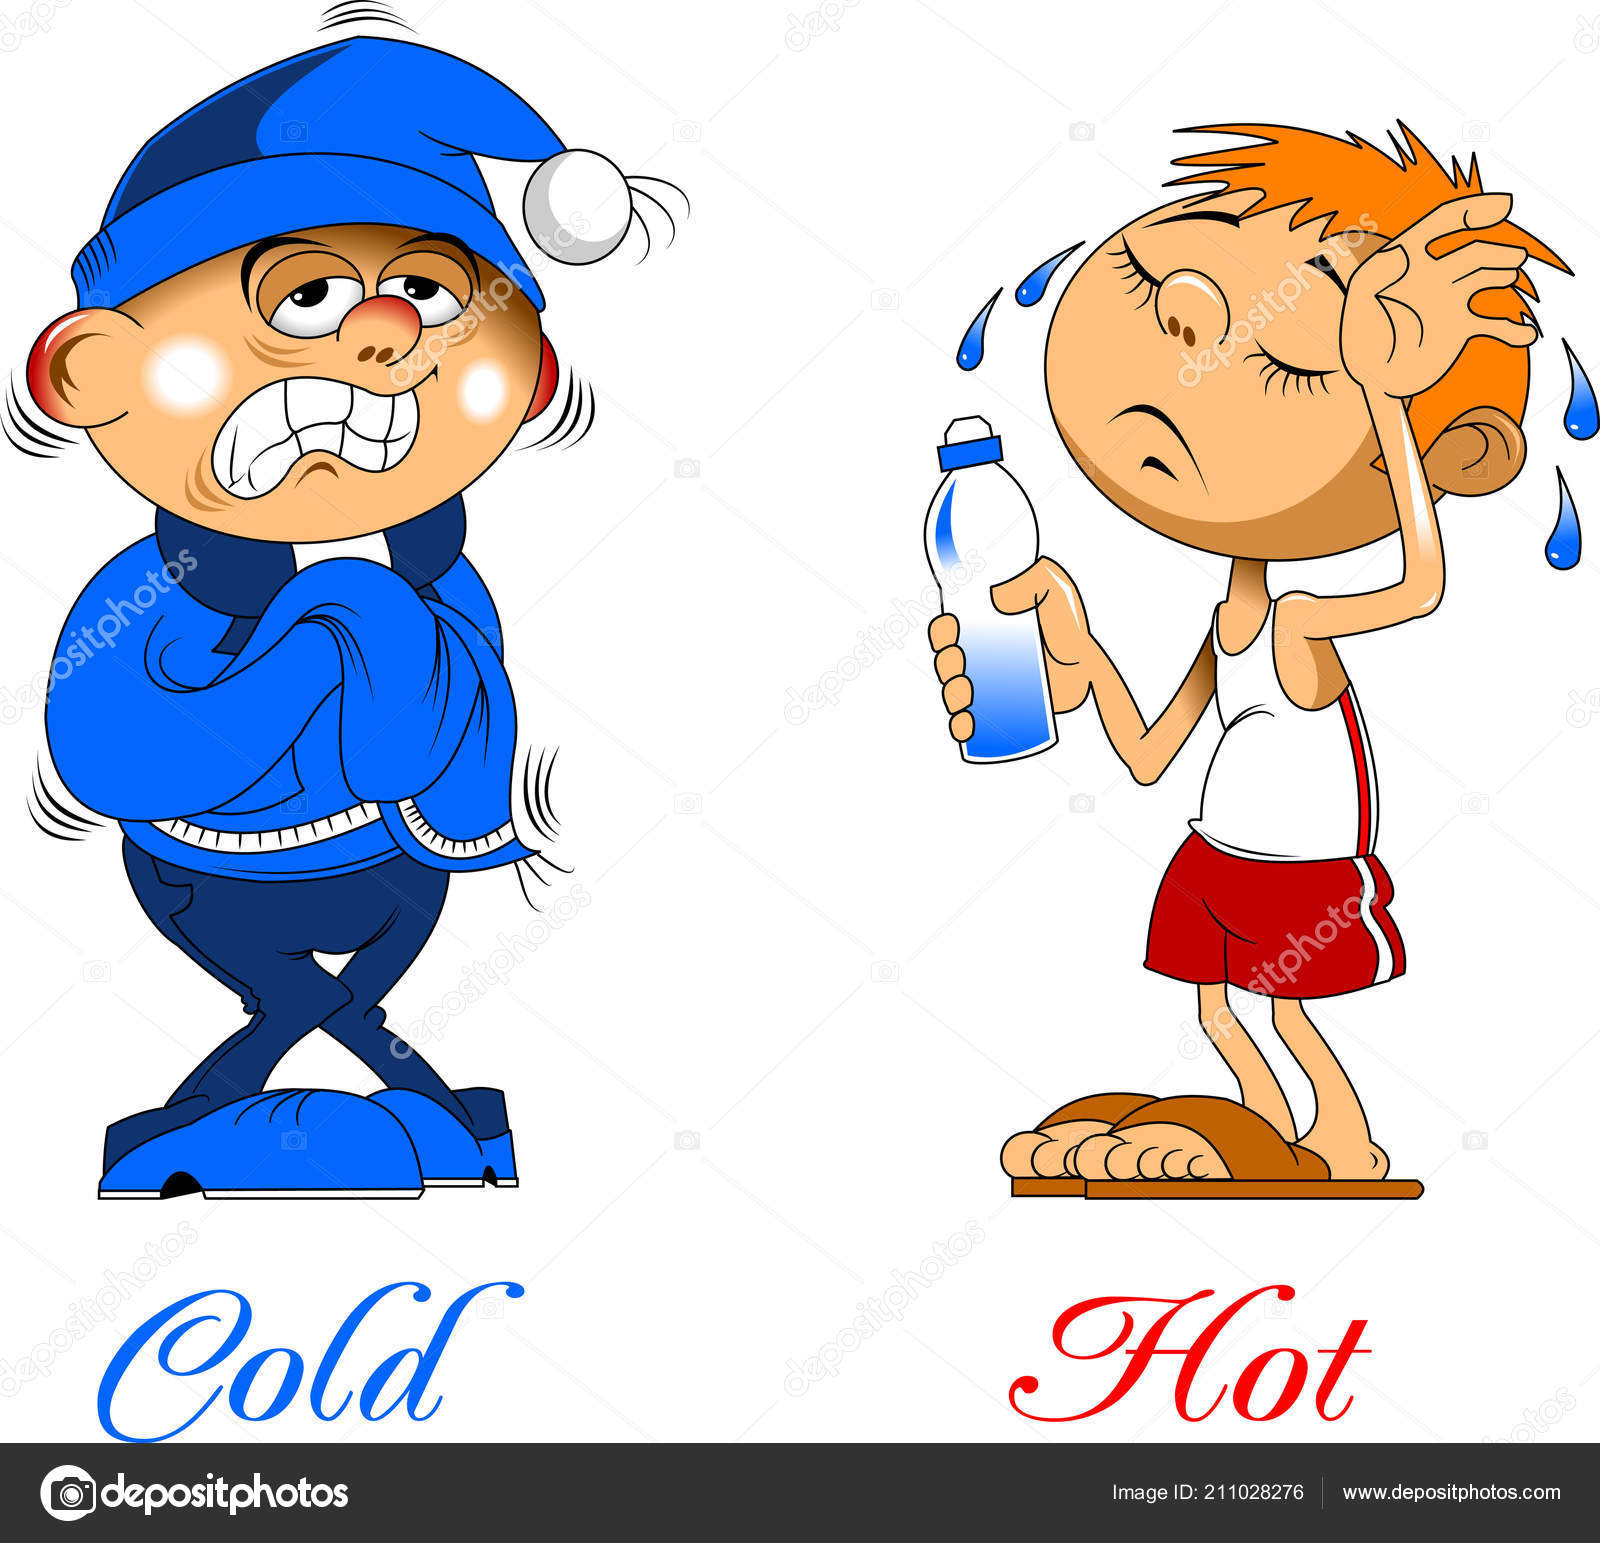 Clipart Hot And Cold